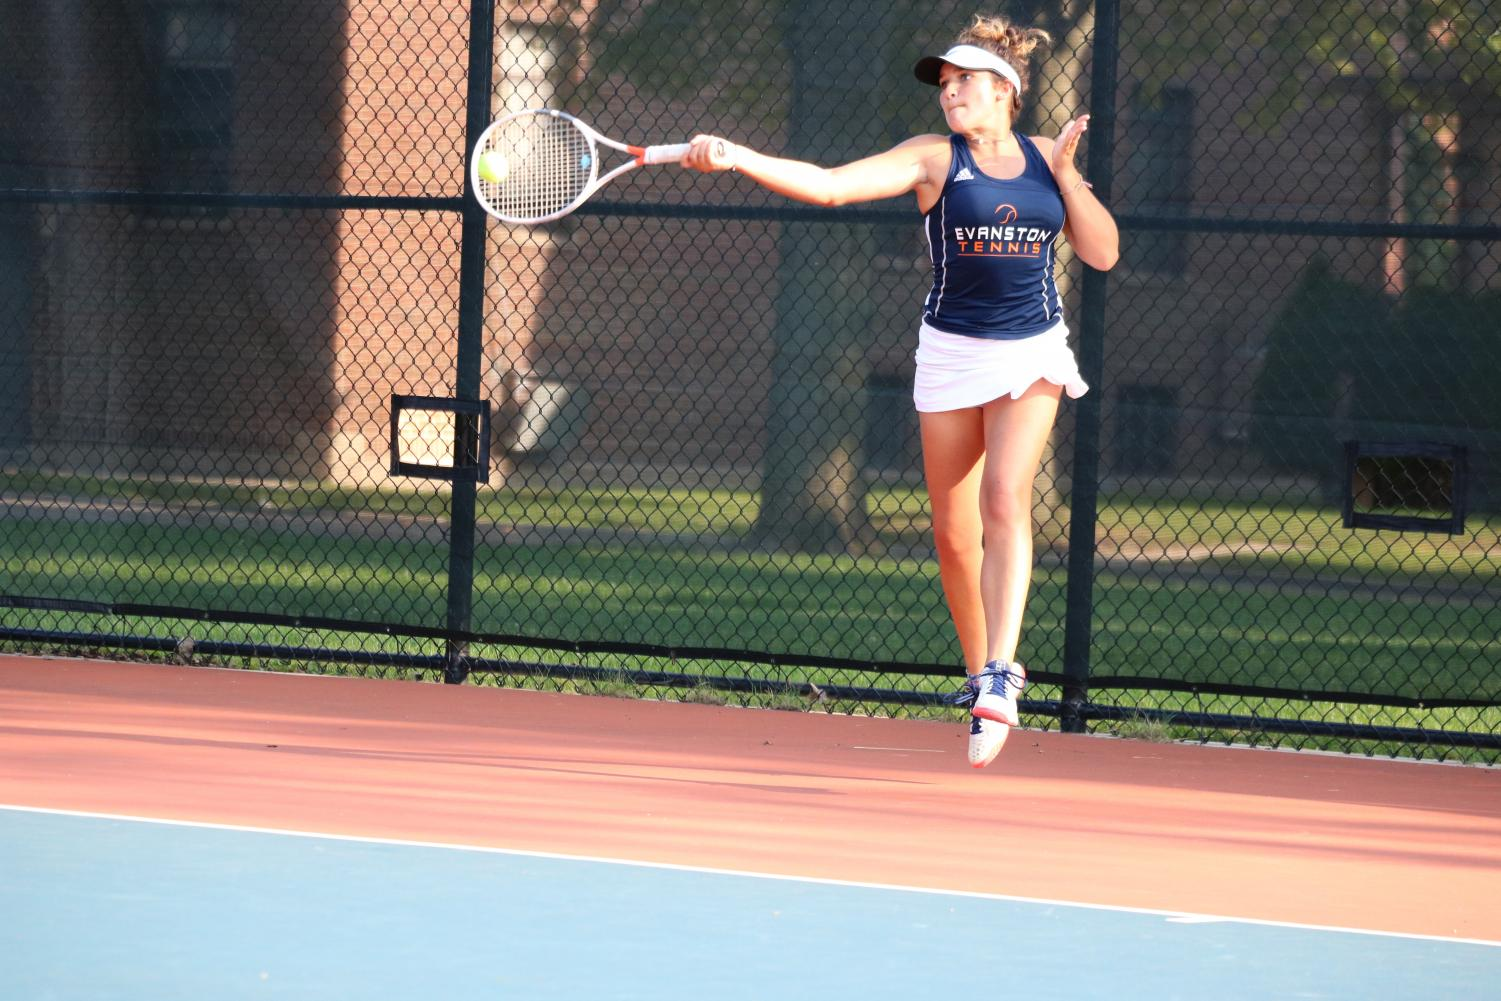 Freshman Julia Demopoulos hits her forehand.